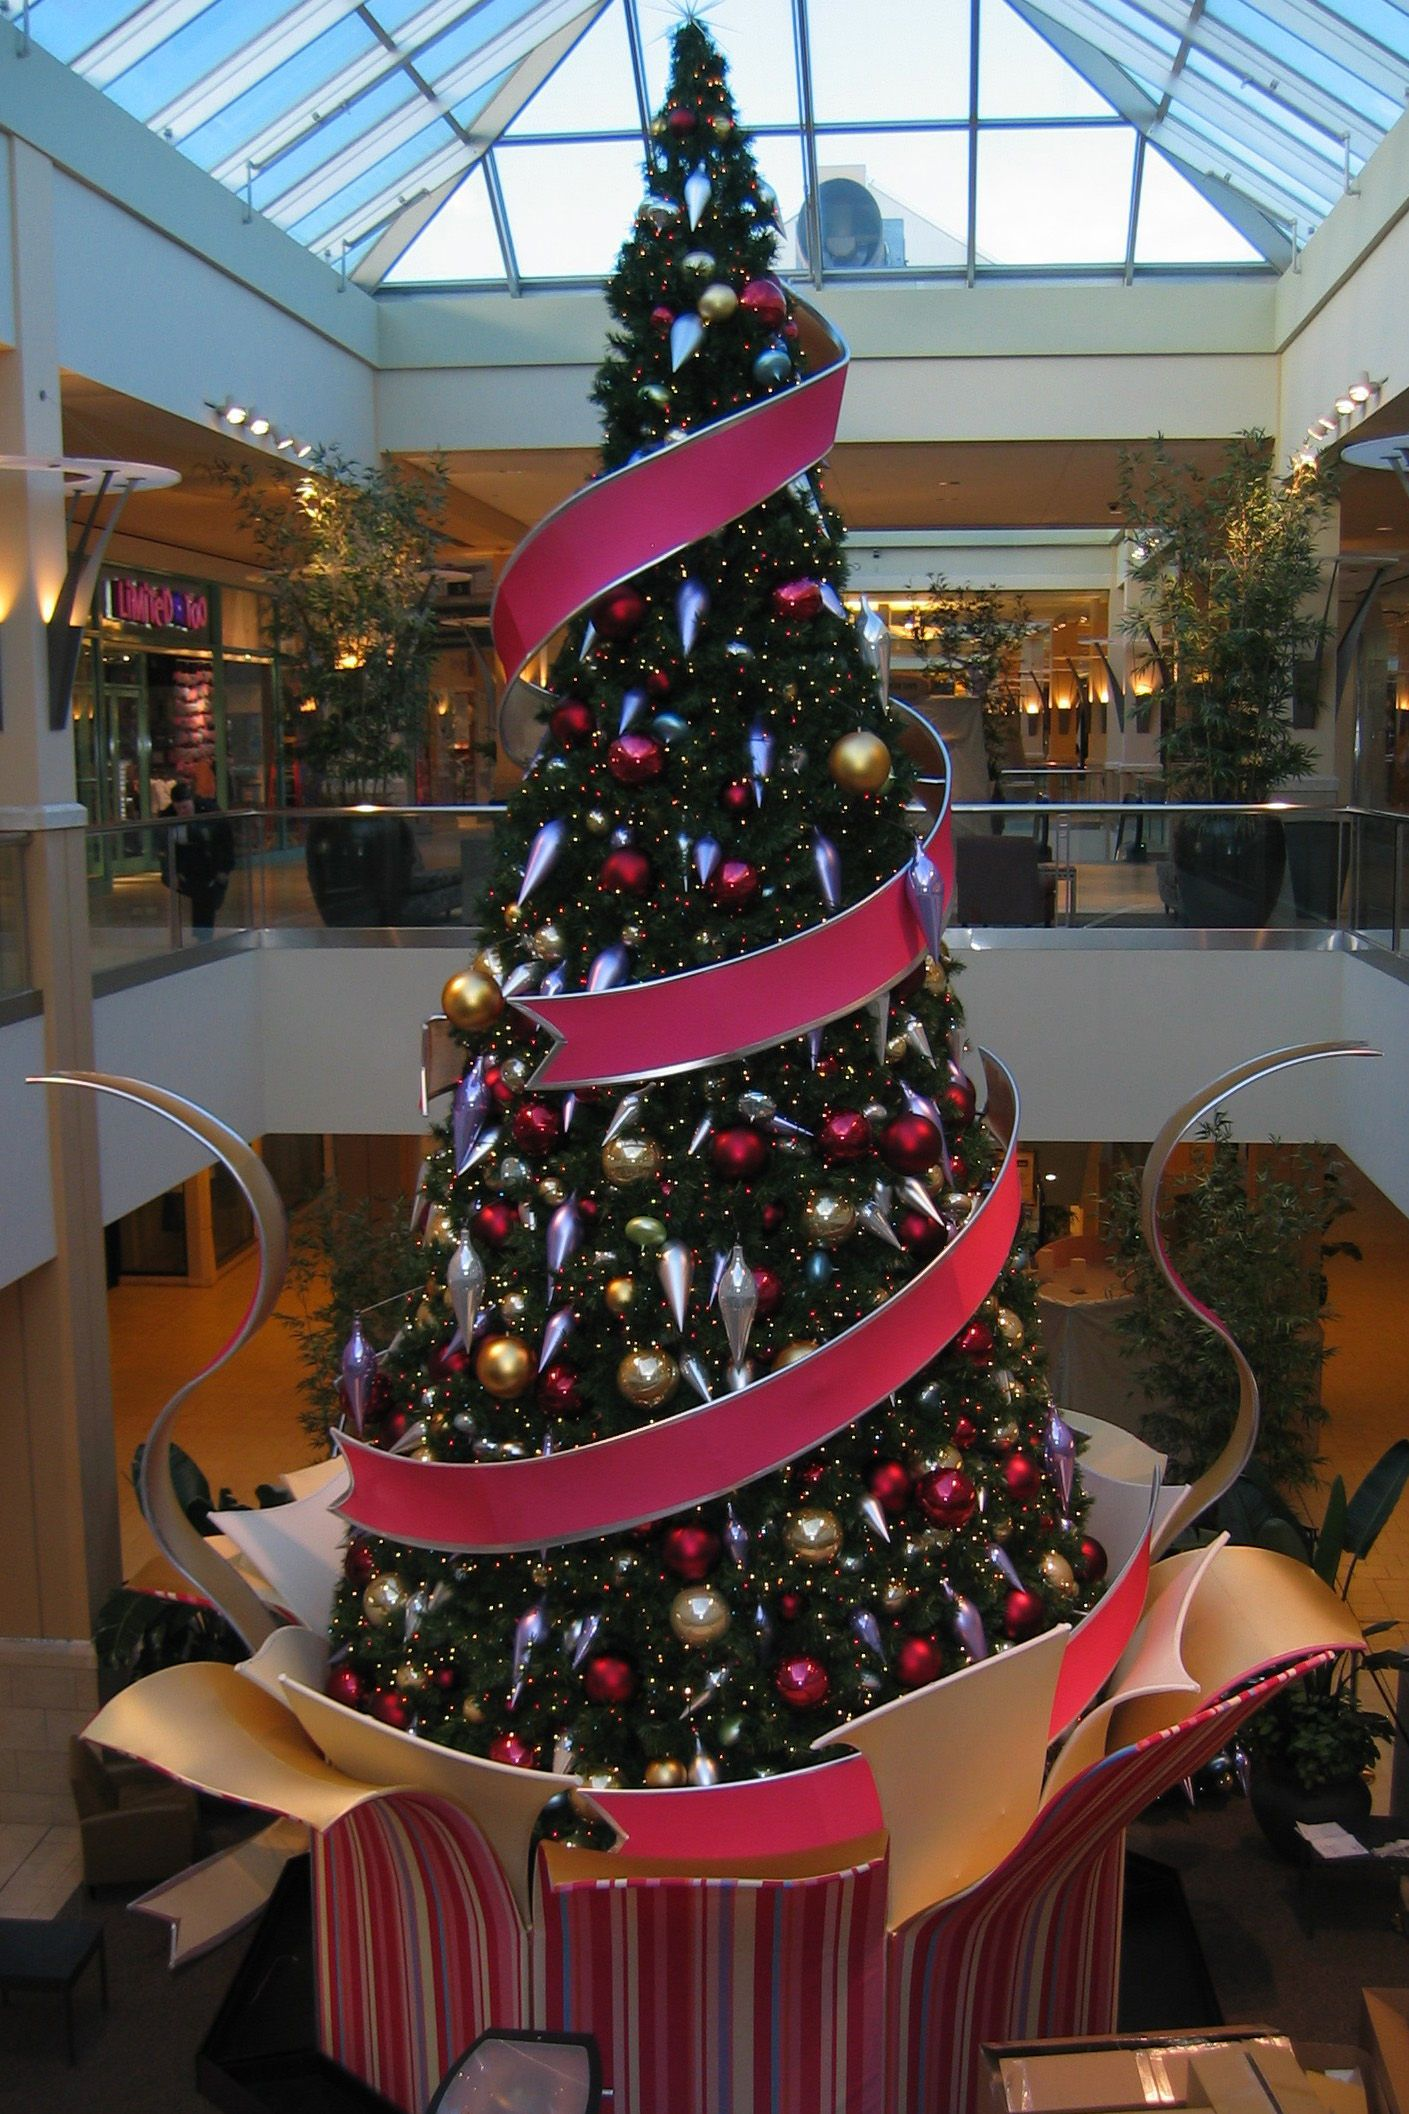 This Christmas tree in this shopping mall is created with